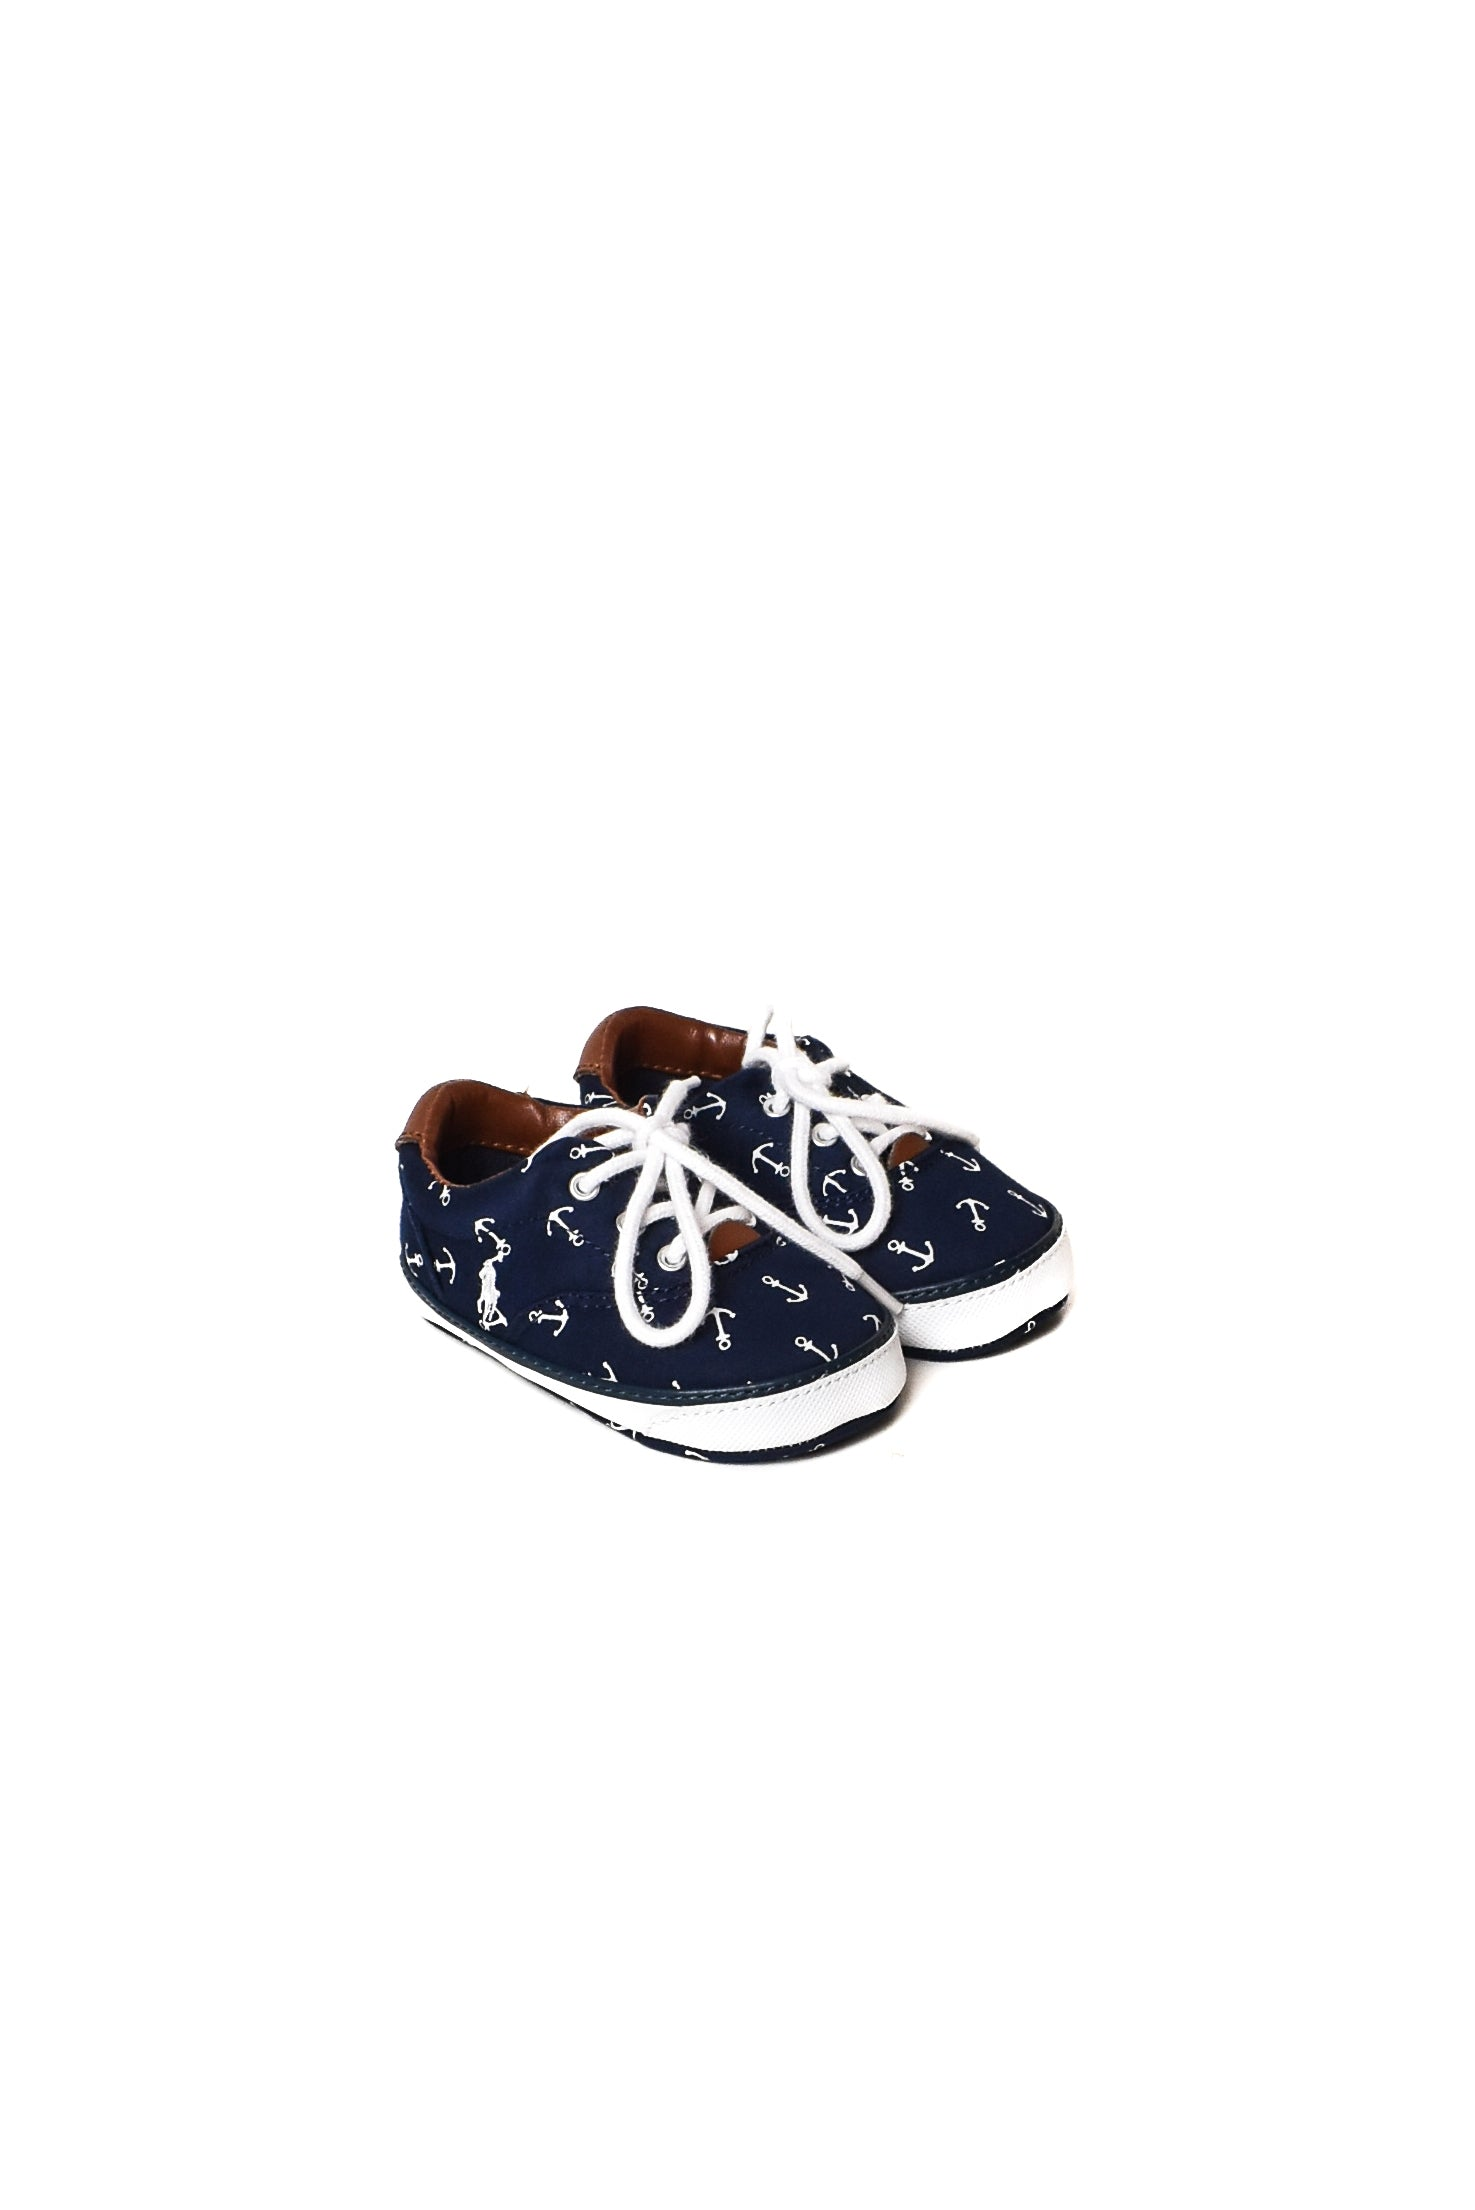 10008503 Ralph Lauren Baby ~ Shoes 6-12M (EU 18) at Retykle